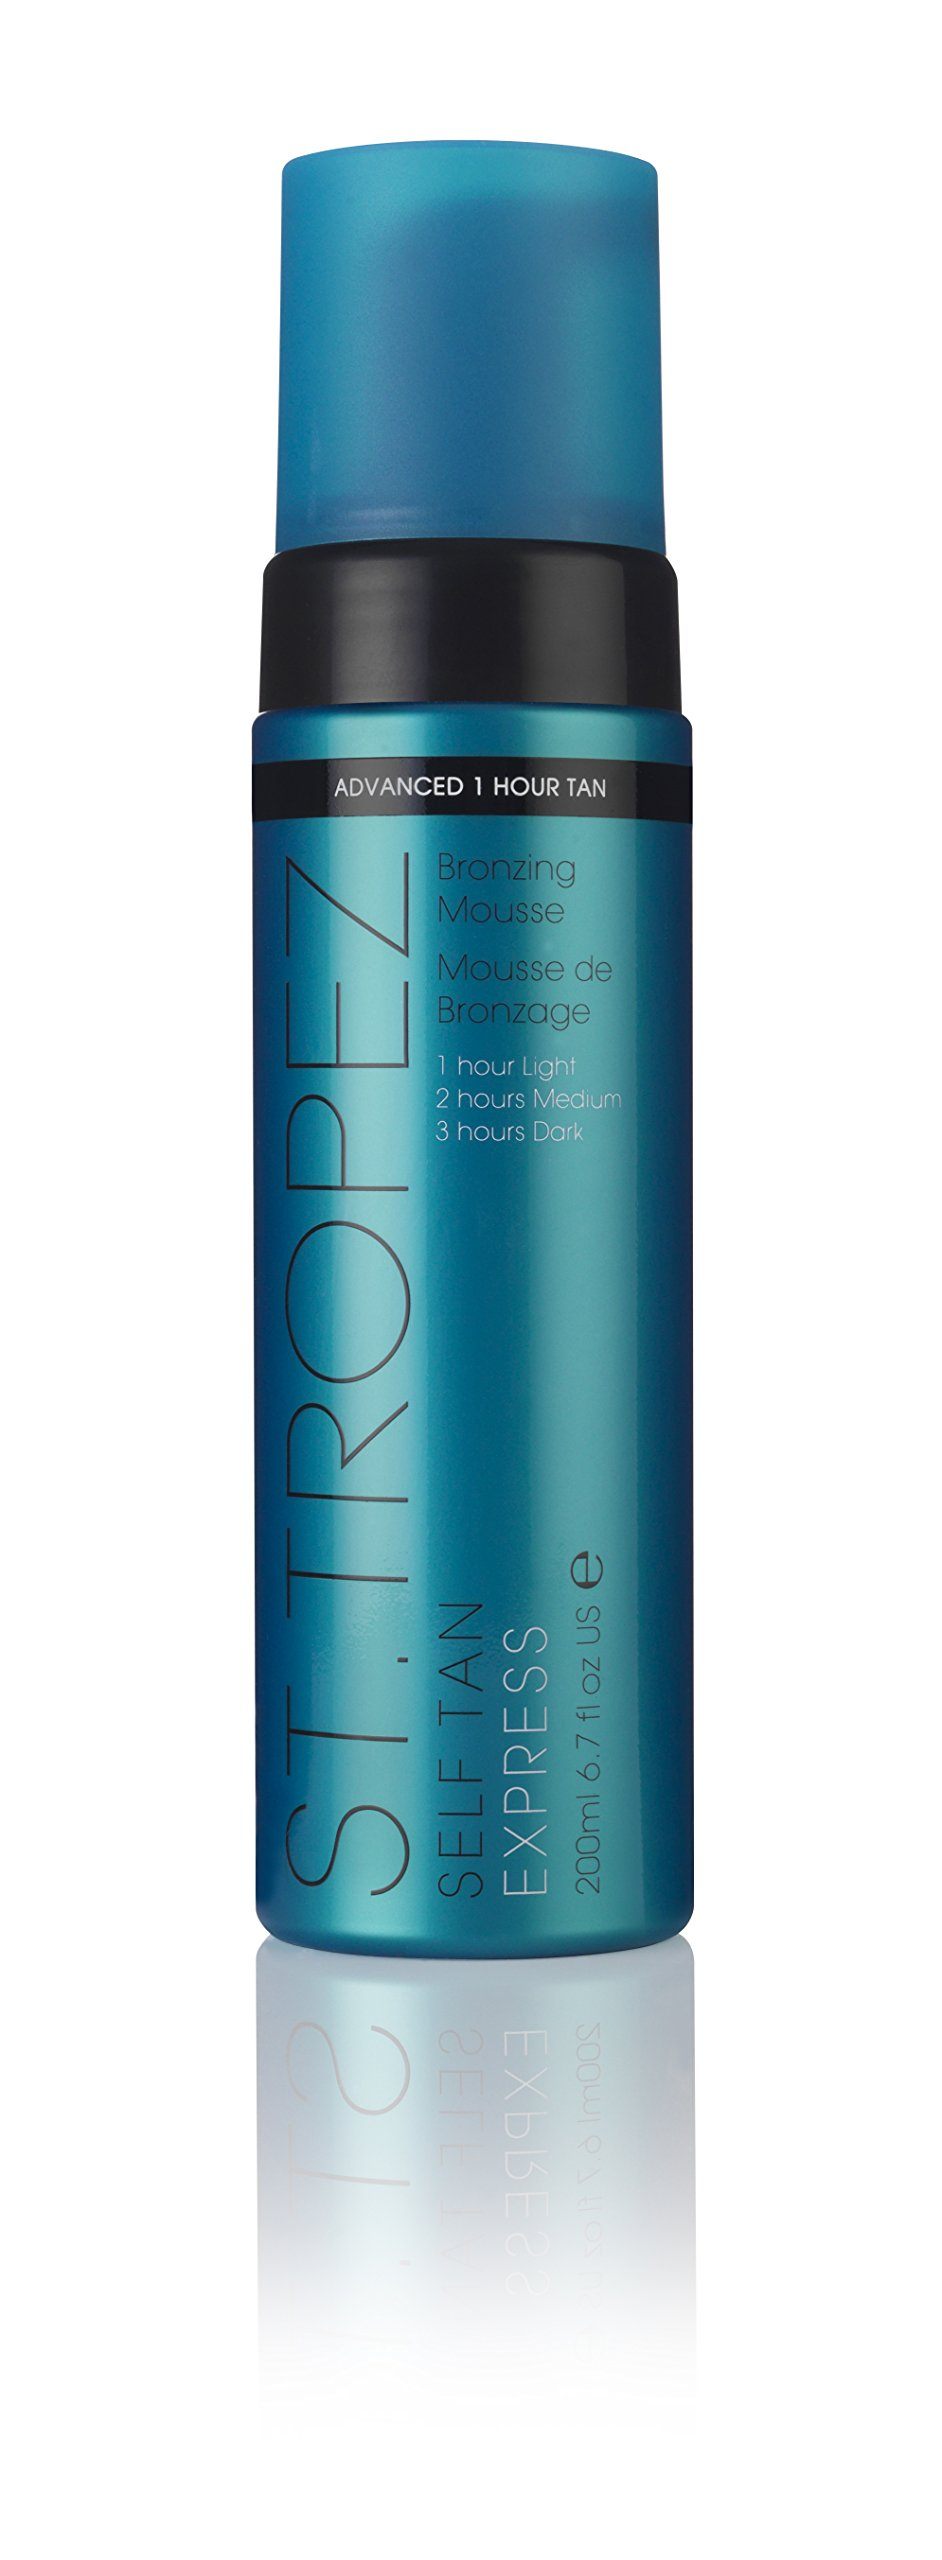 St. Tropez Self Tan Express Advanced Bronzing Mousse, 6.7 Fl Oz by ST TROPEZ